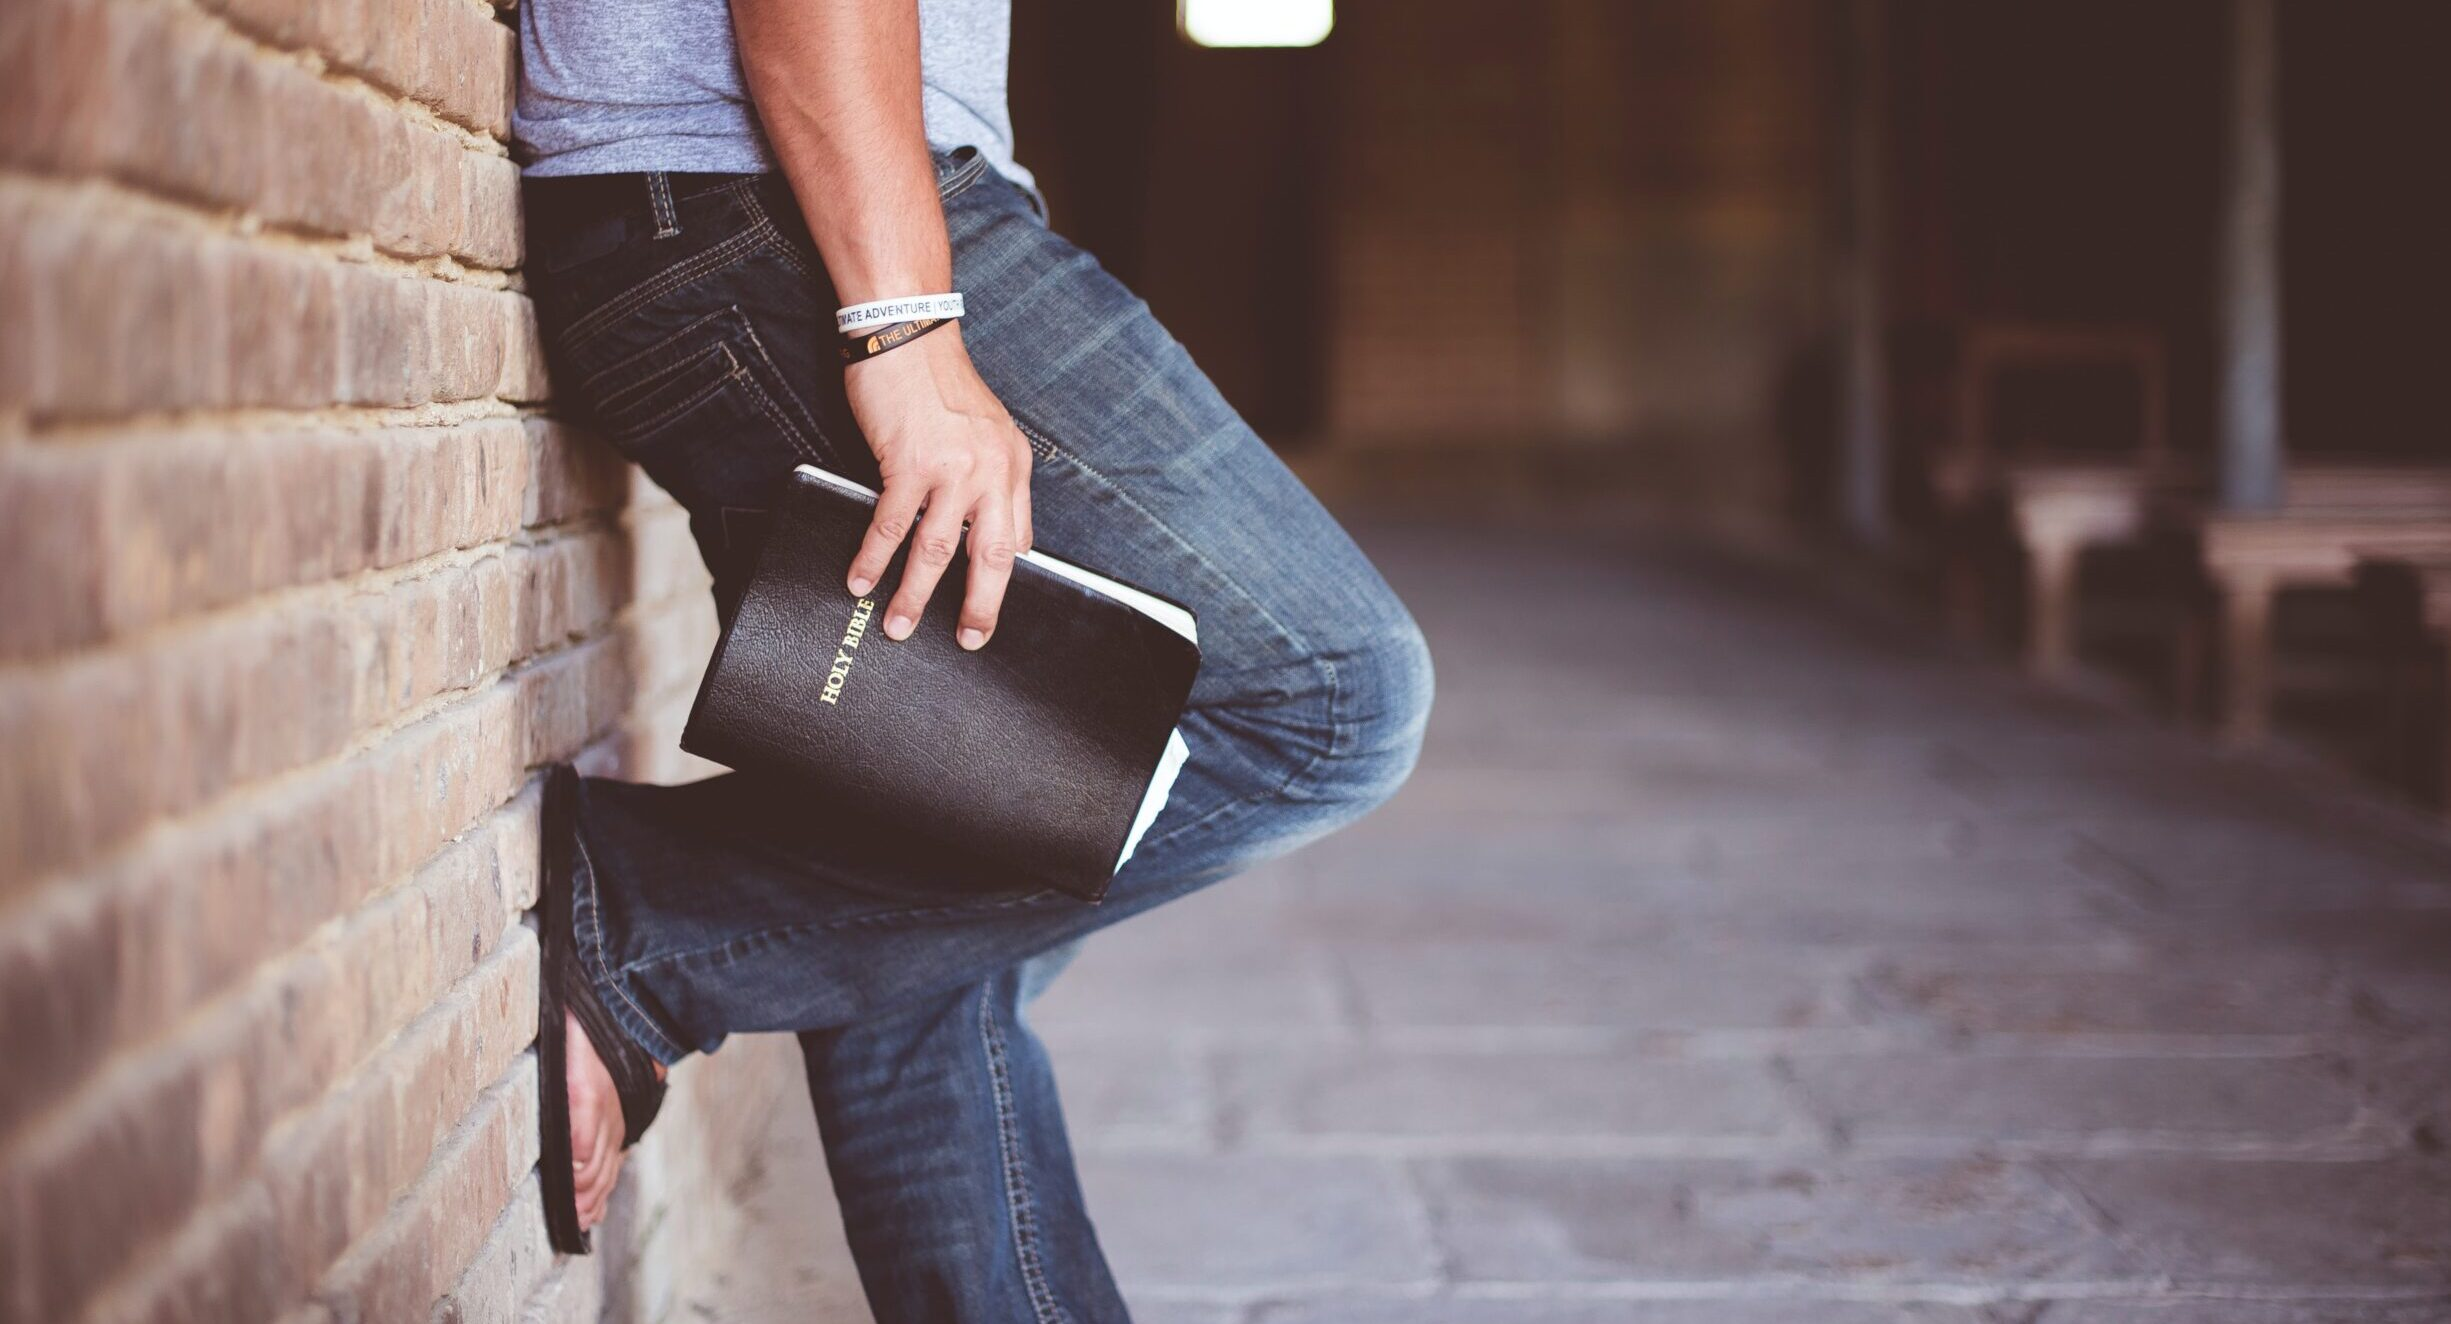 Man leaning against brick wall while holding a Bible